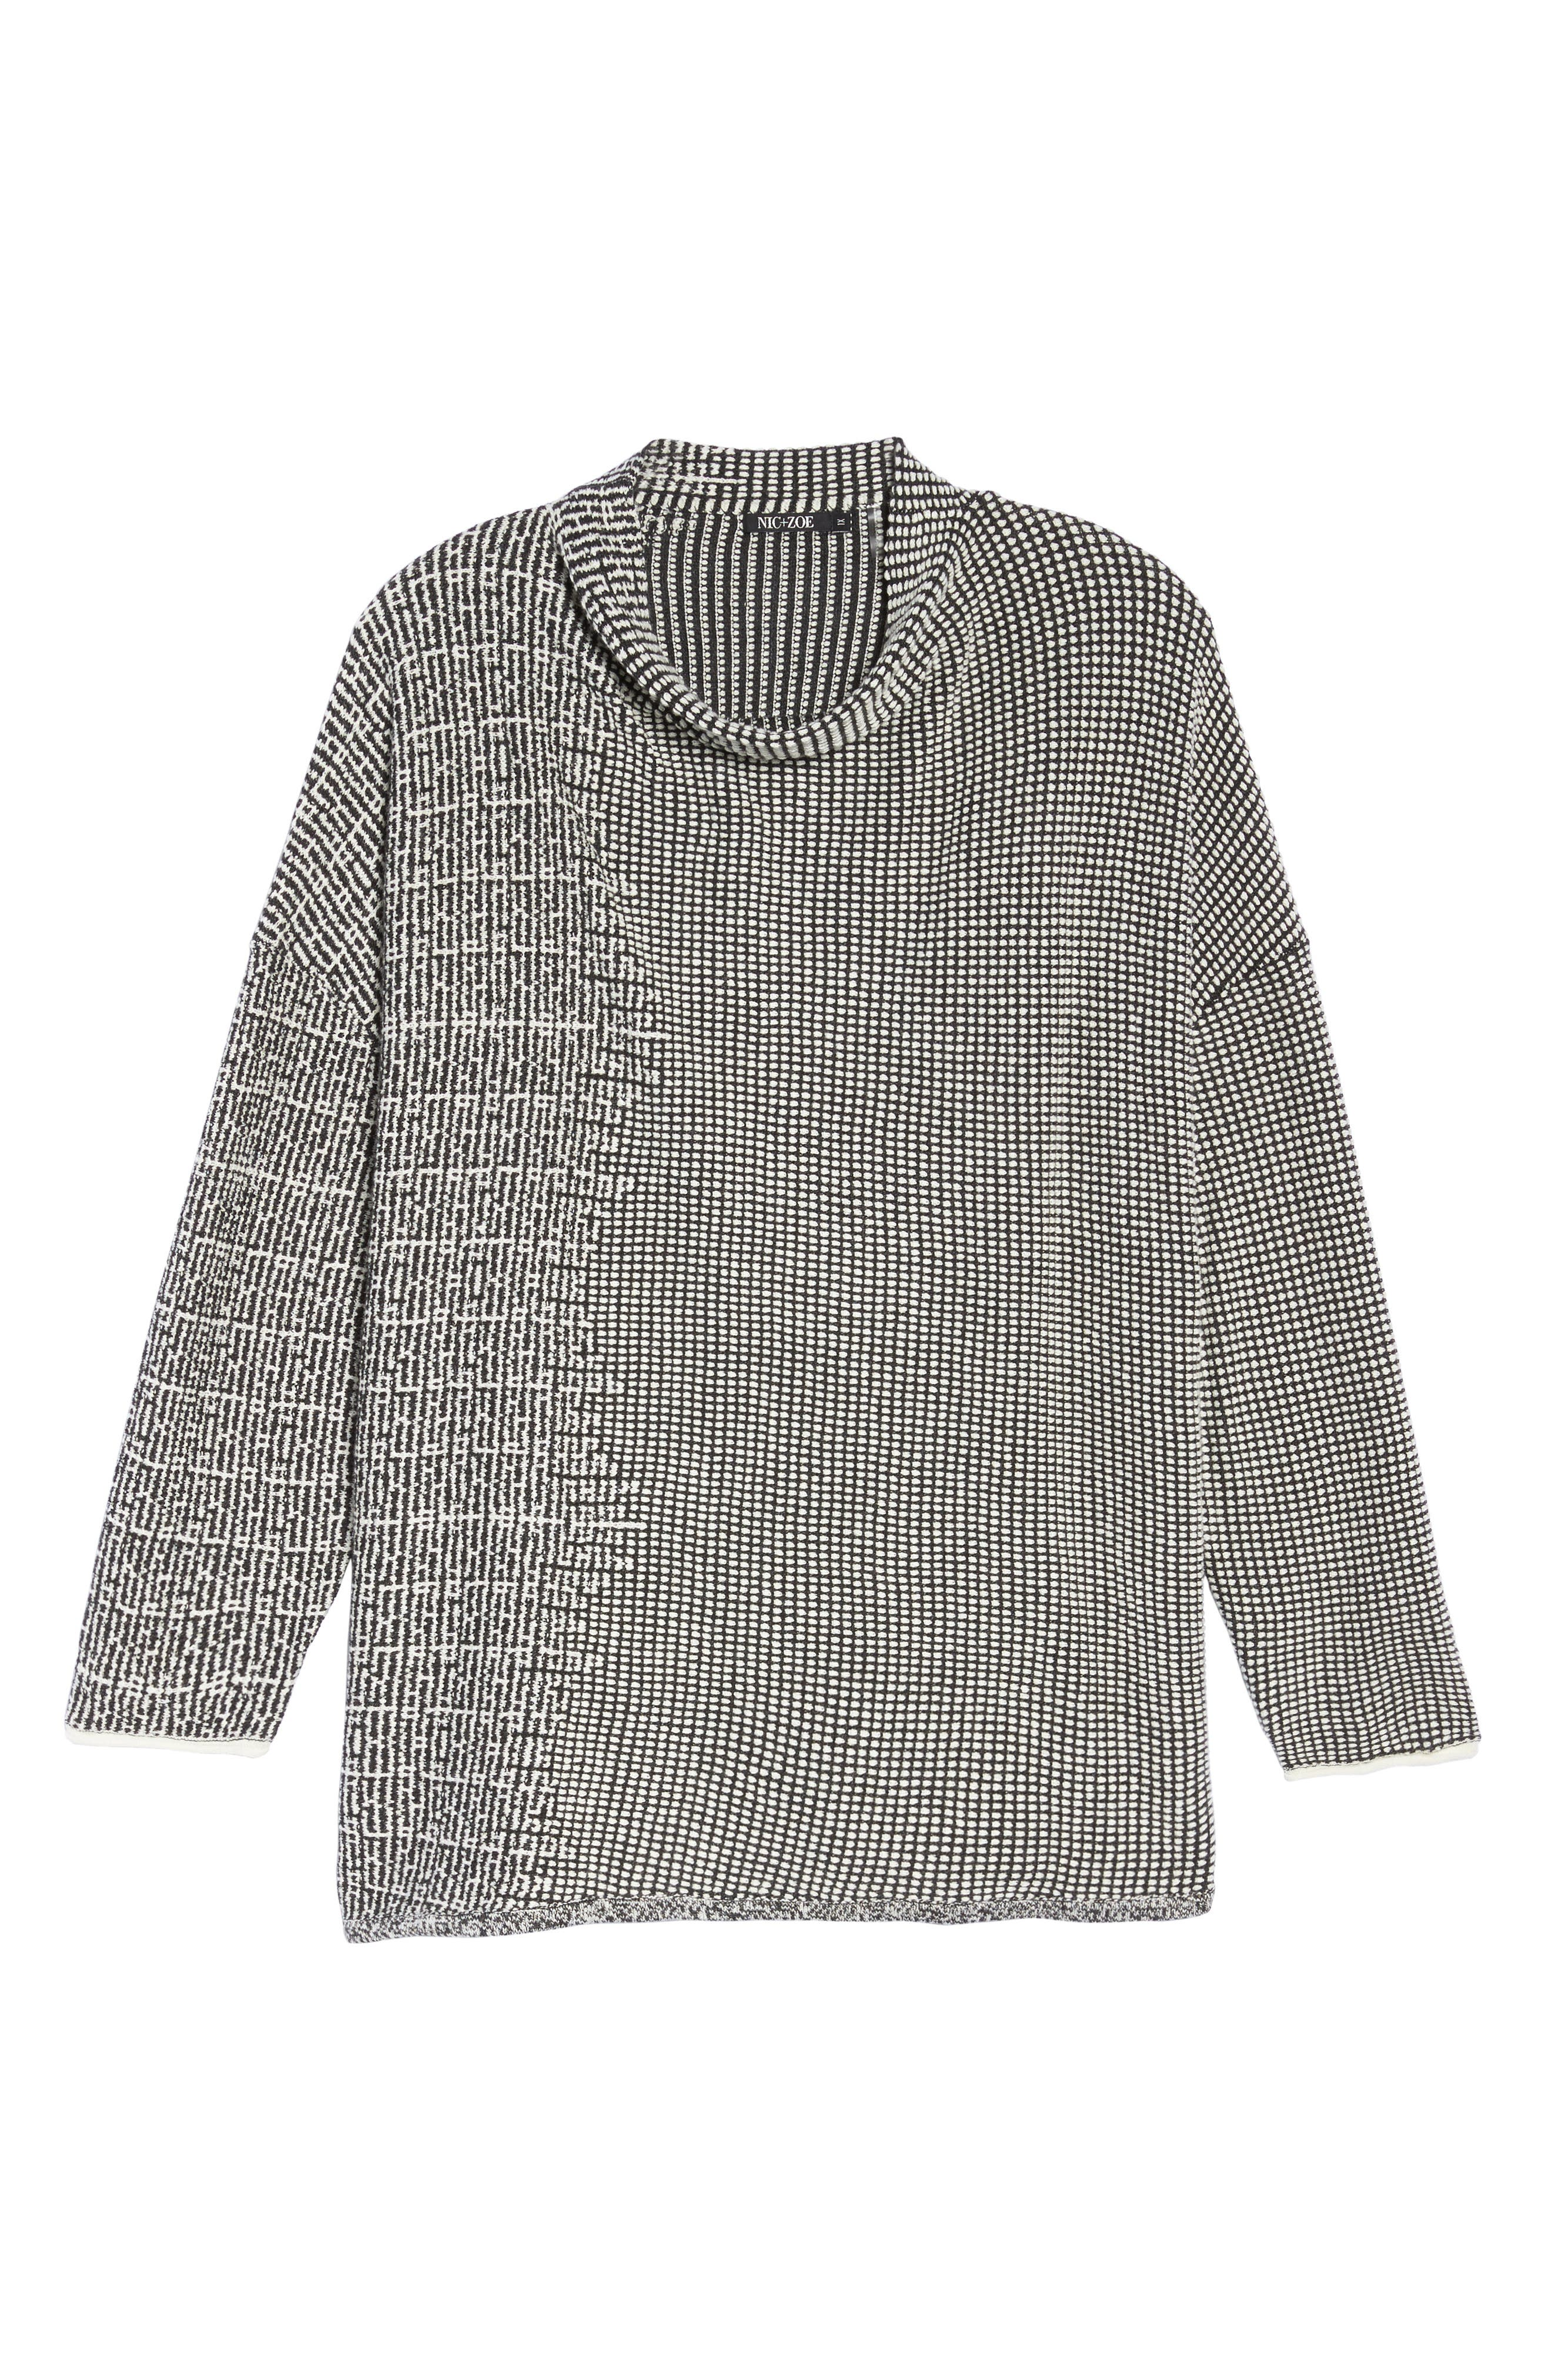 Frosted Fall Sweater,                             Alternate thumbnail 6, color,                             001